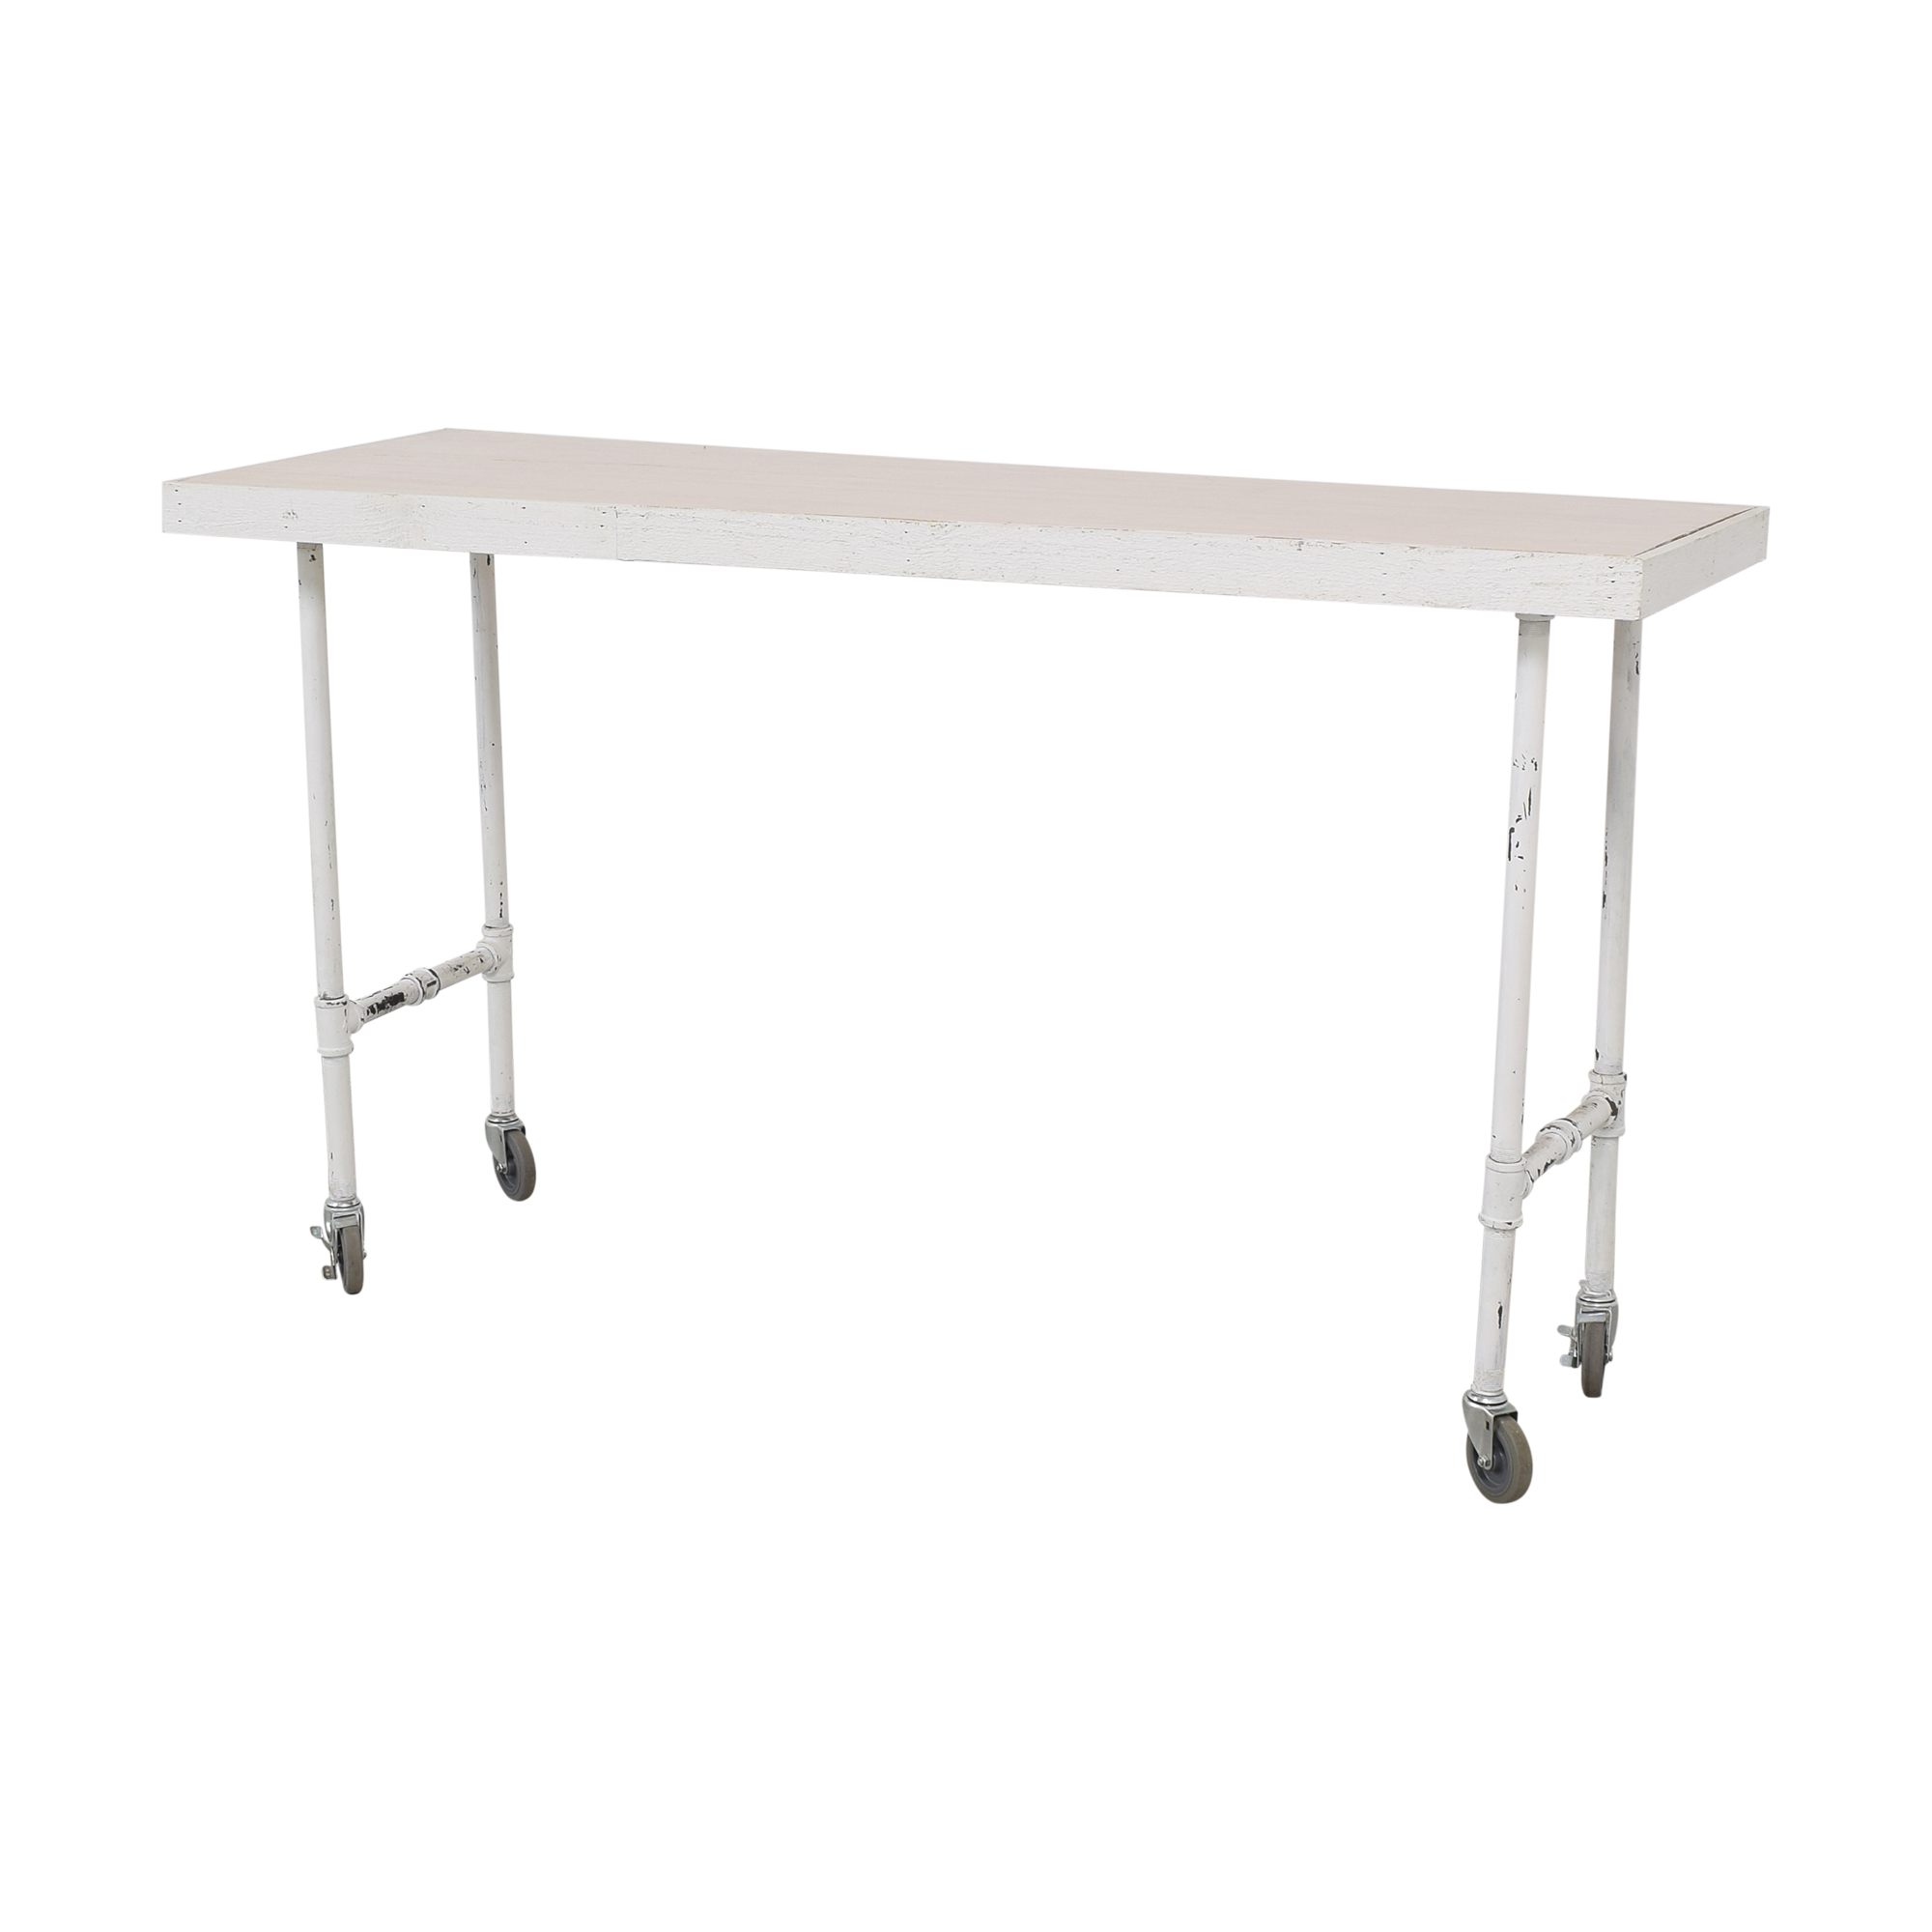 Work Table with Wheels price